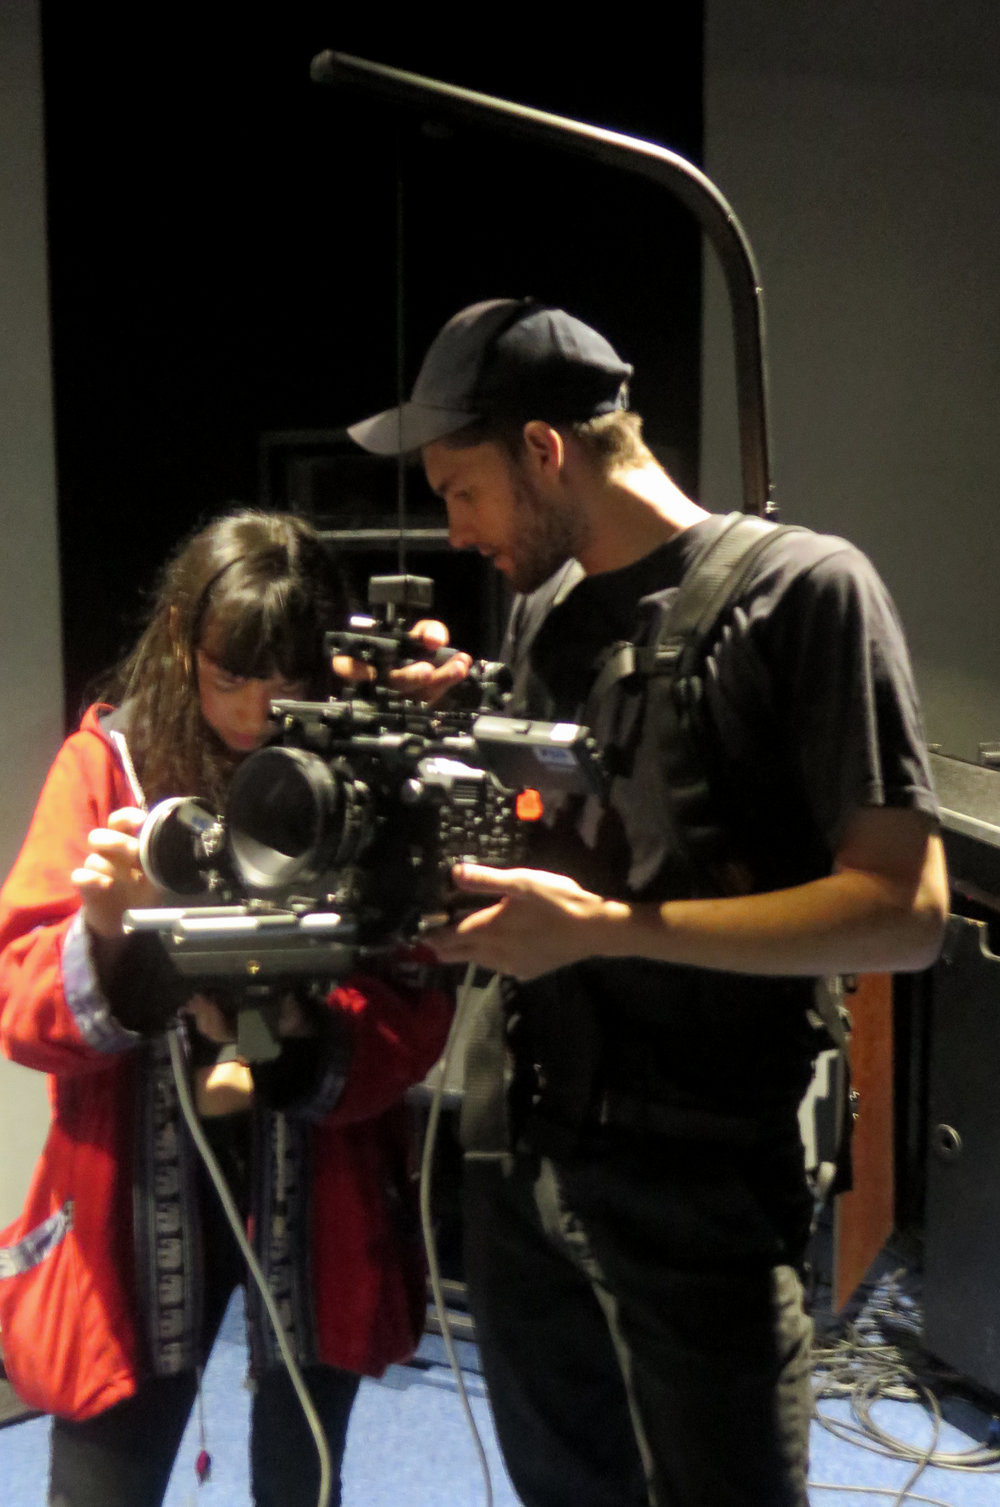 Our Director of Photography Jack Hamilton setting up with 1st A.C Cadhla Kennedy